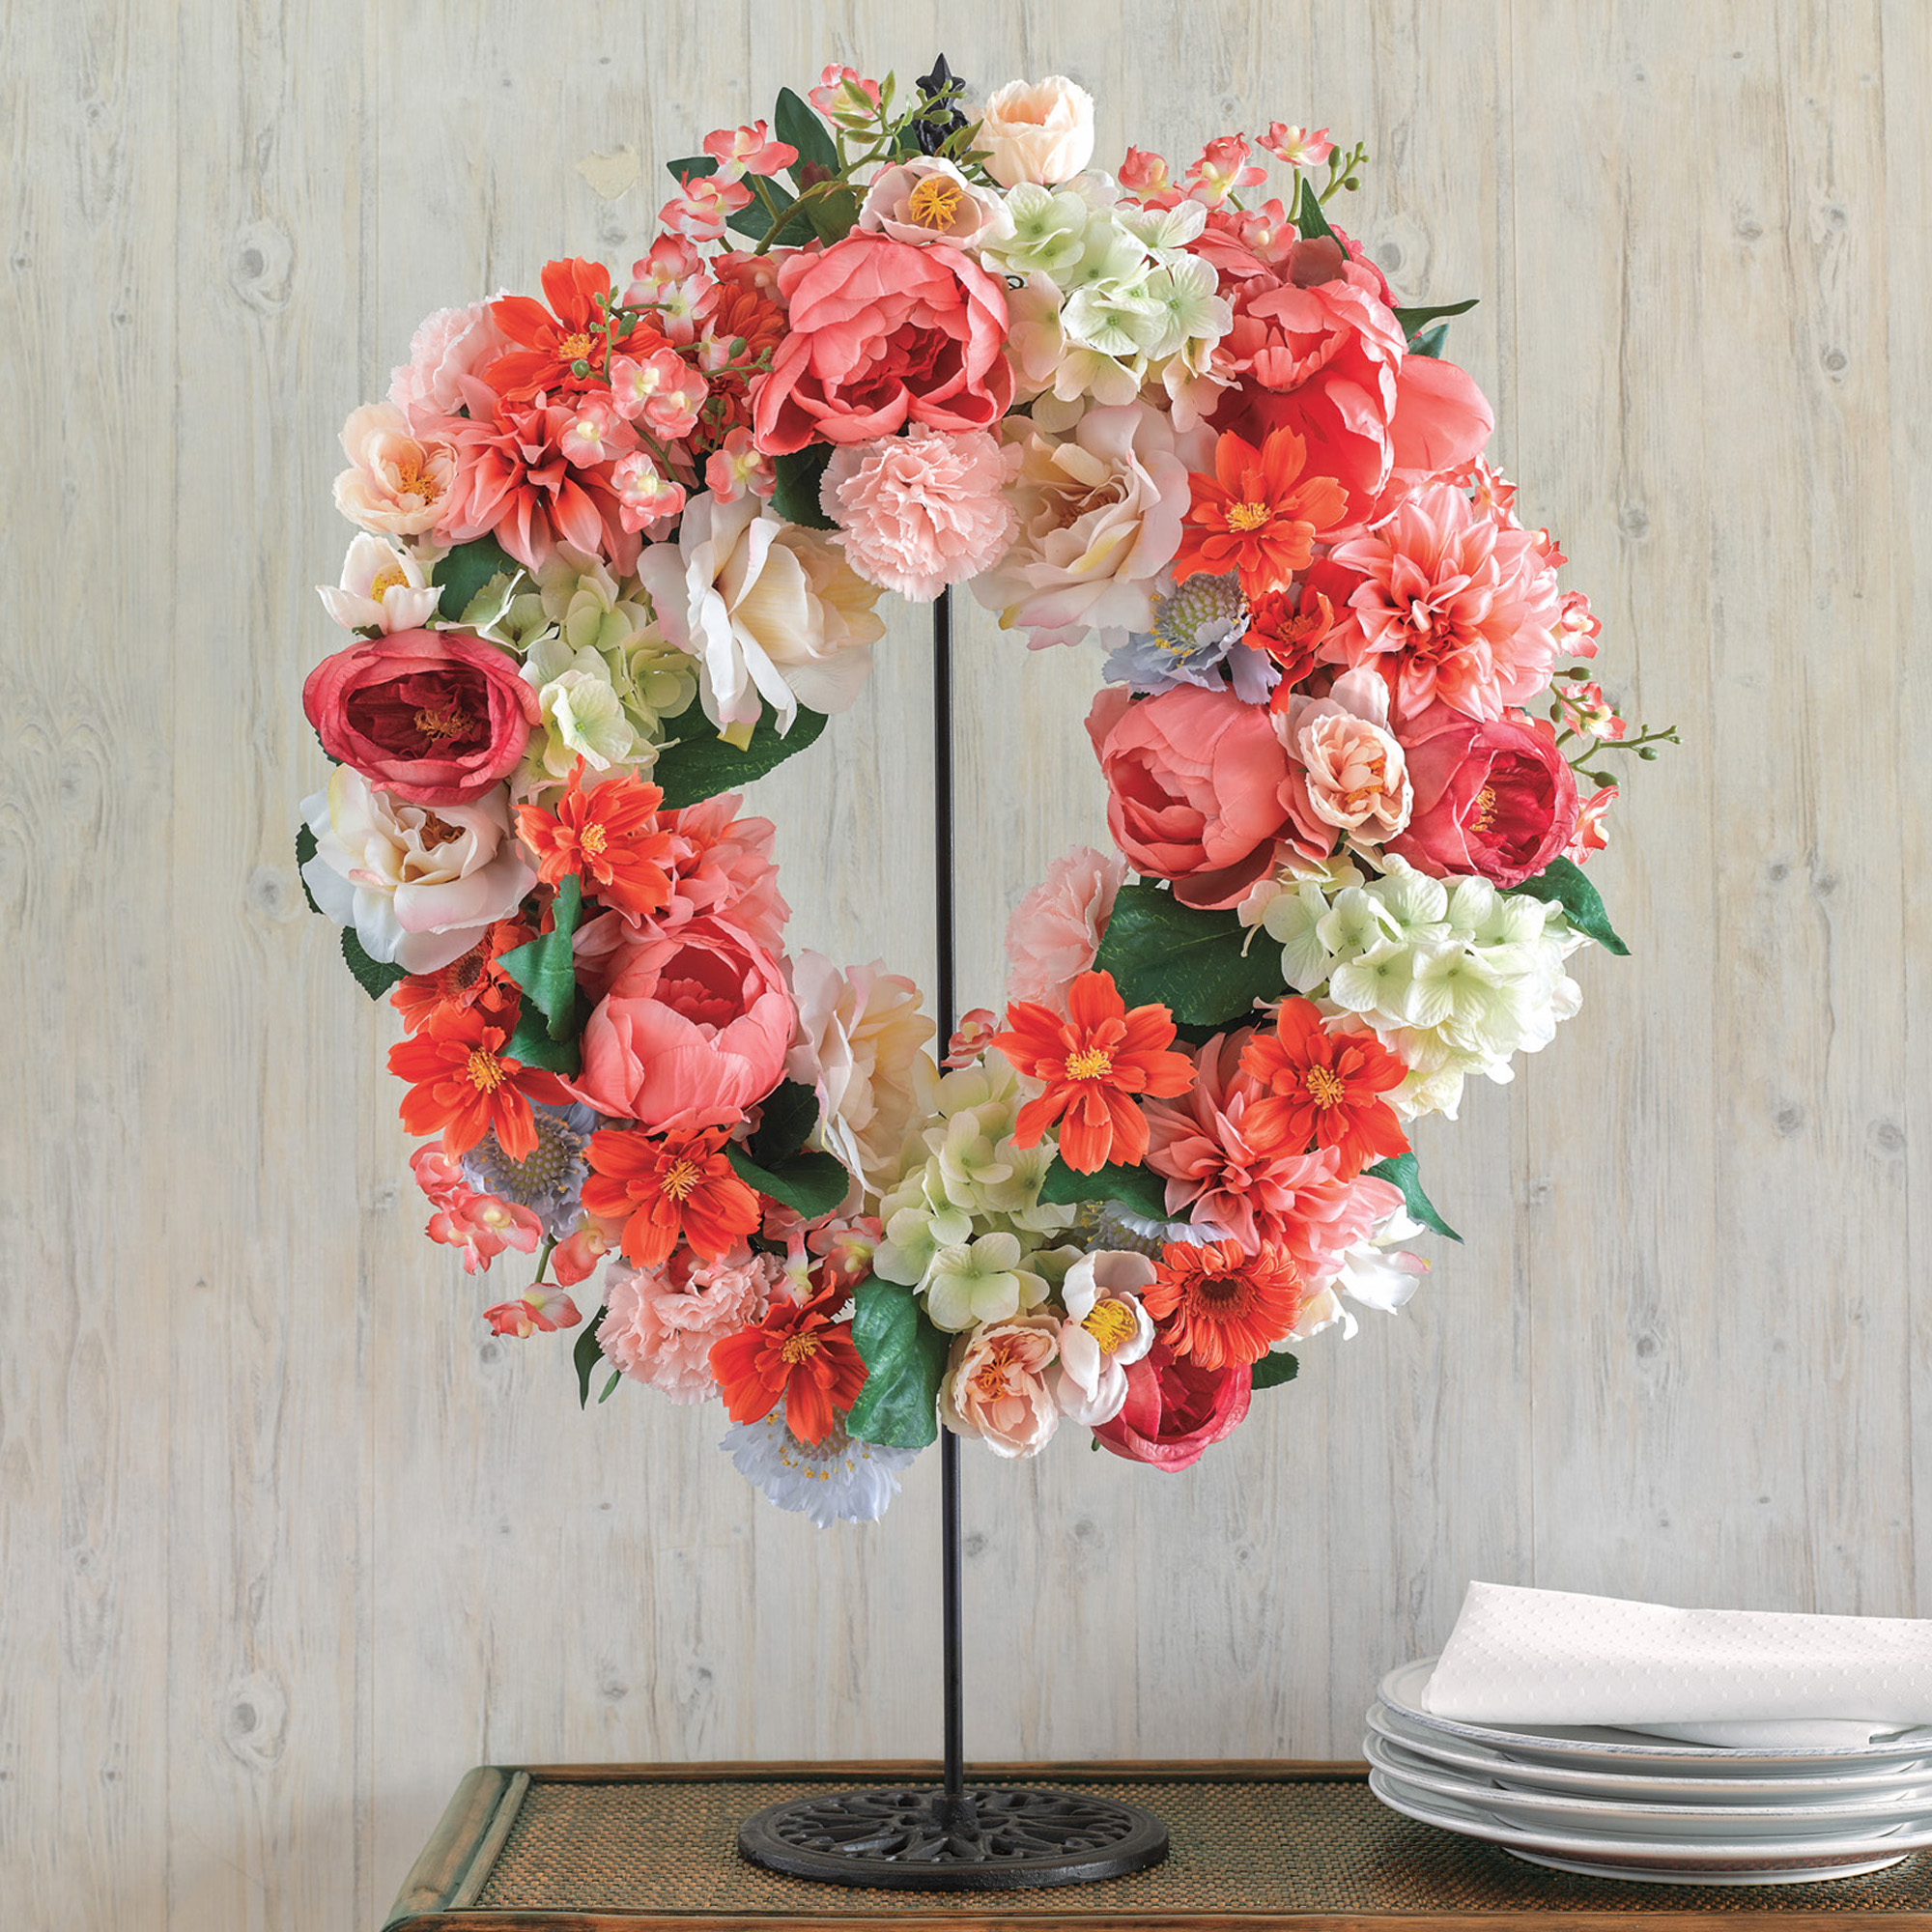 Peach & Cream Hydrangea Wreath